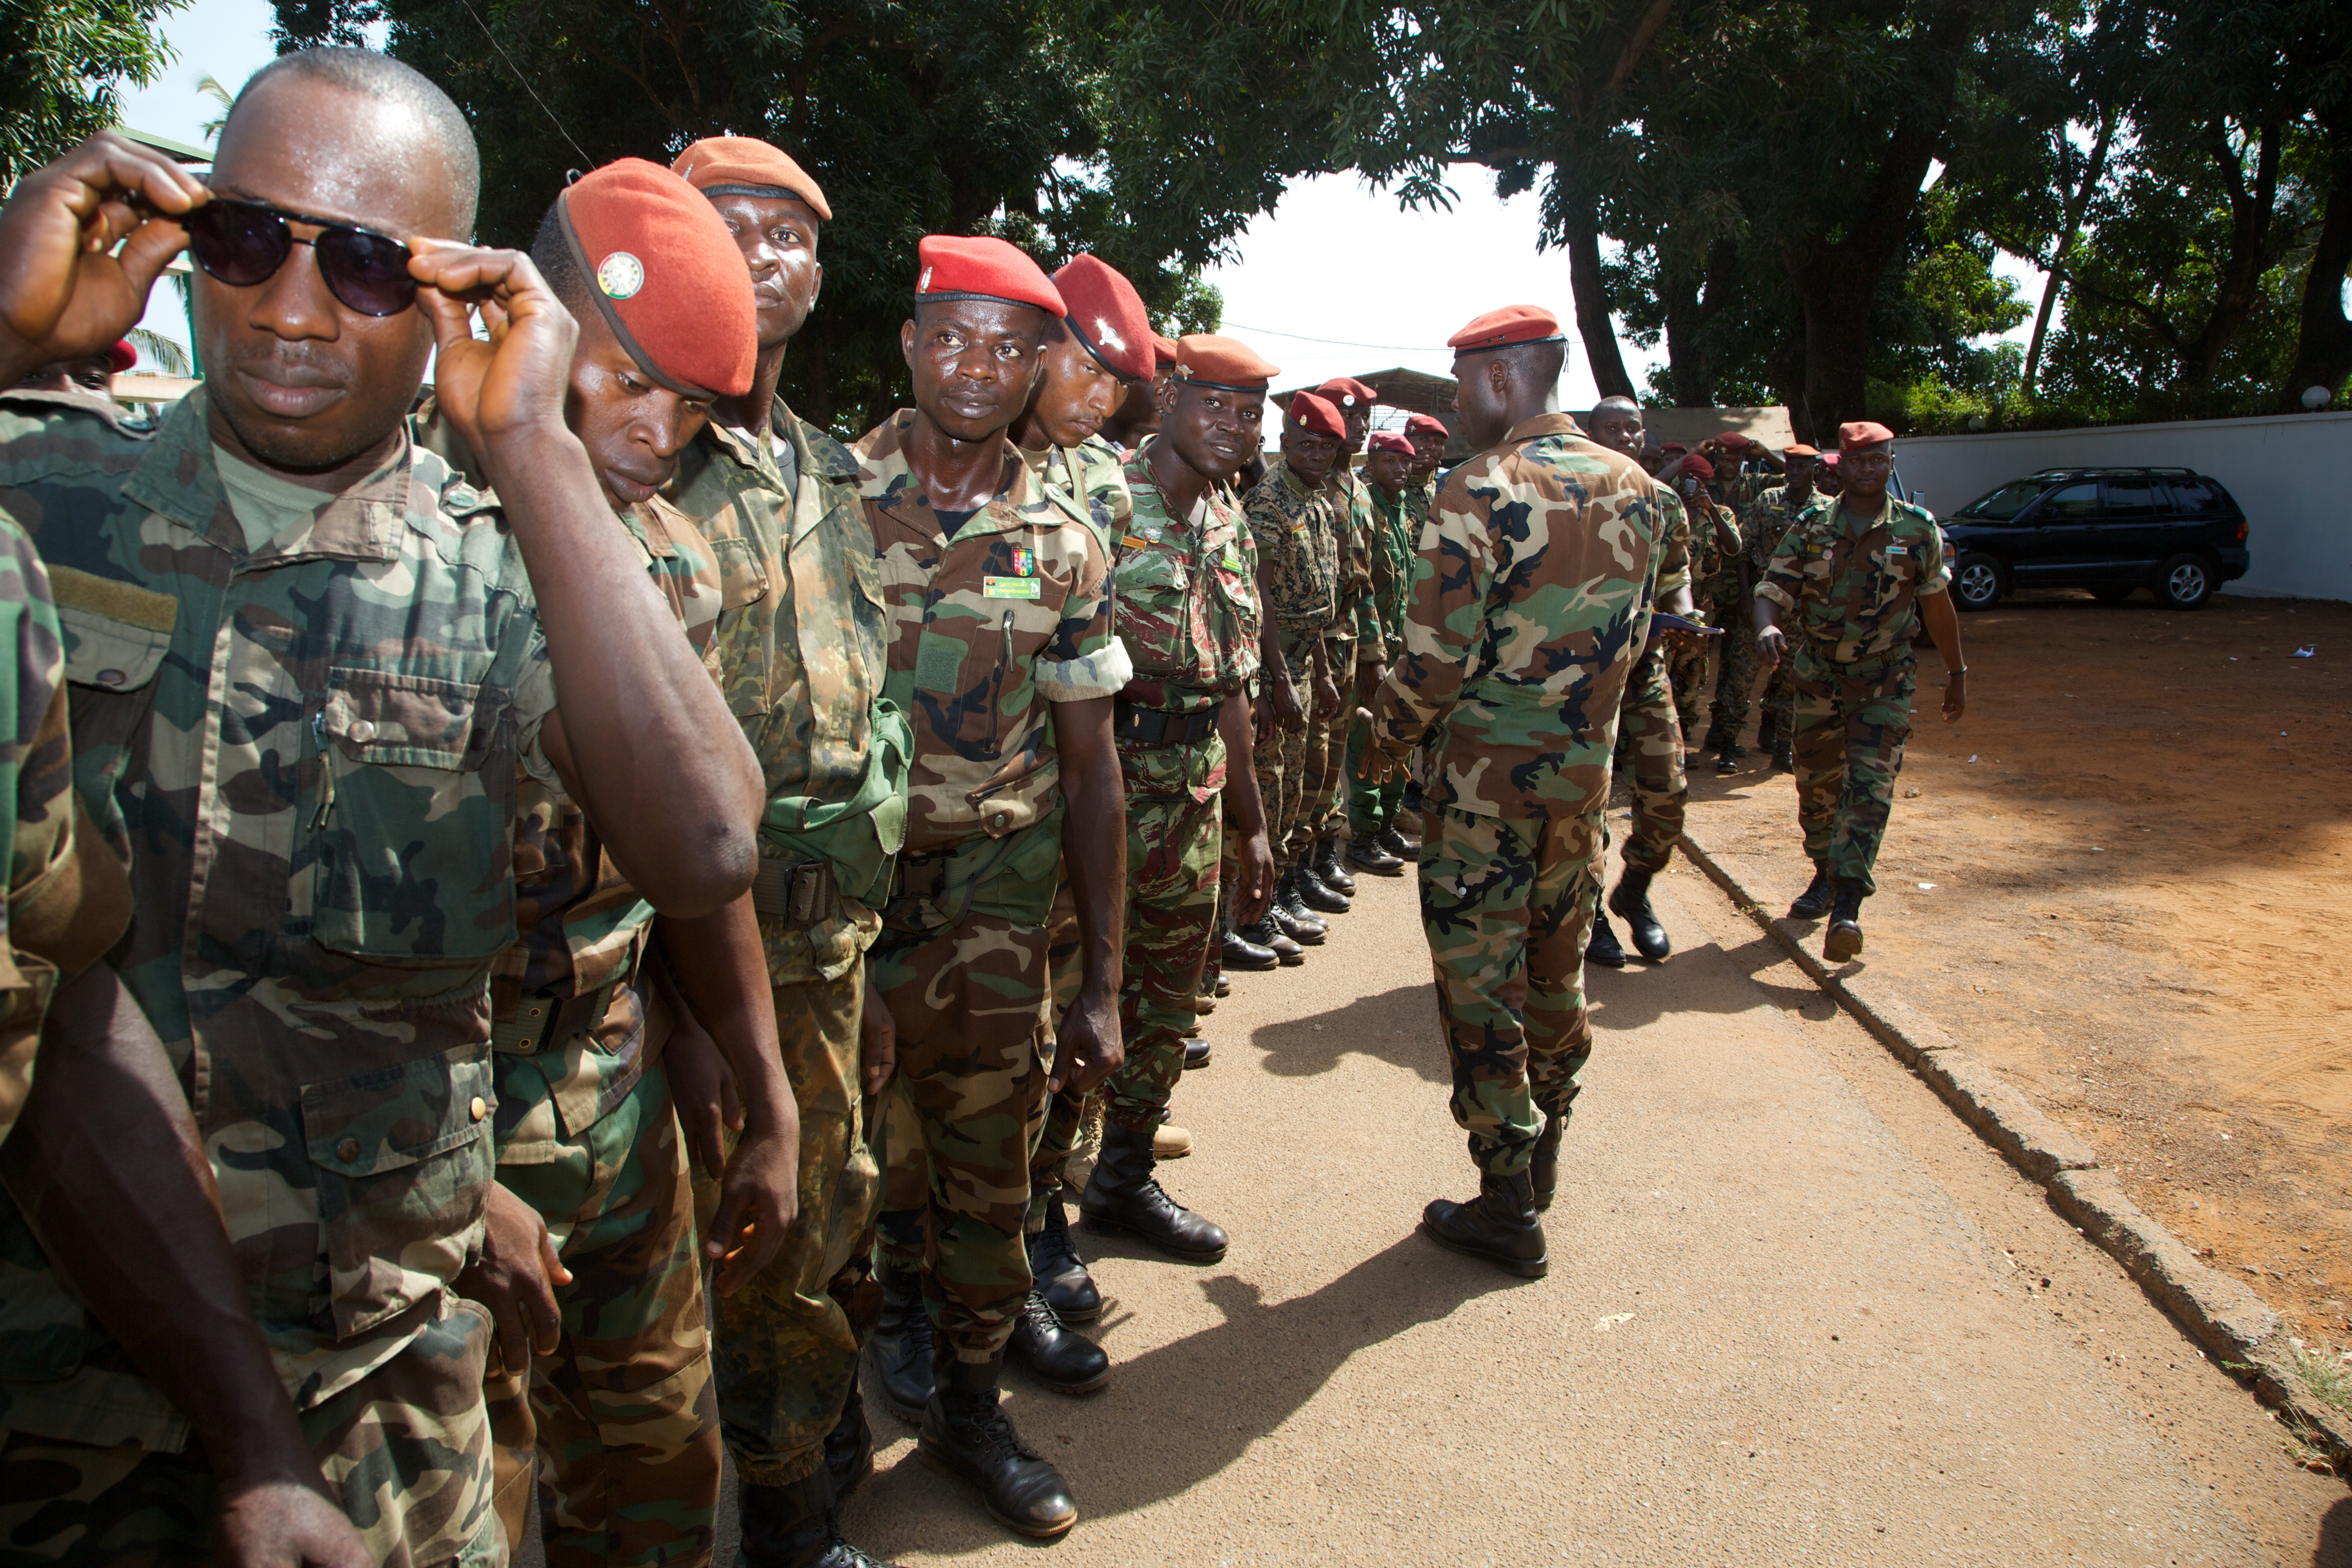 Soldiers lining up to greet Akon